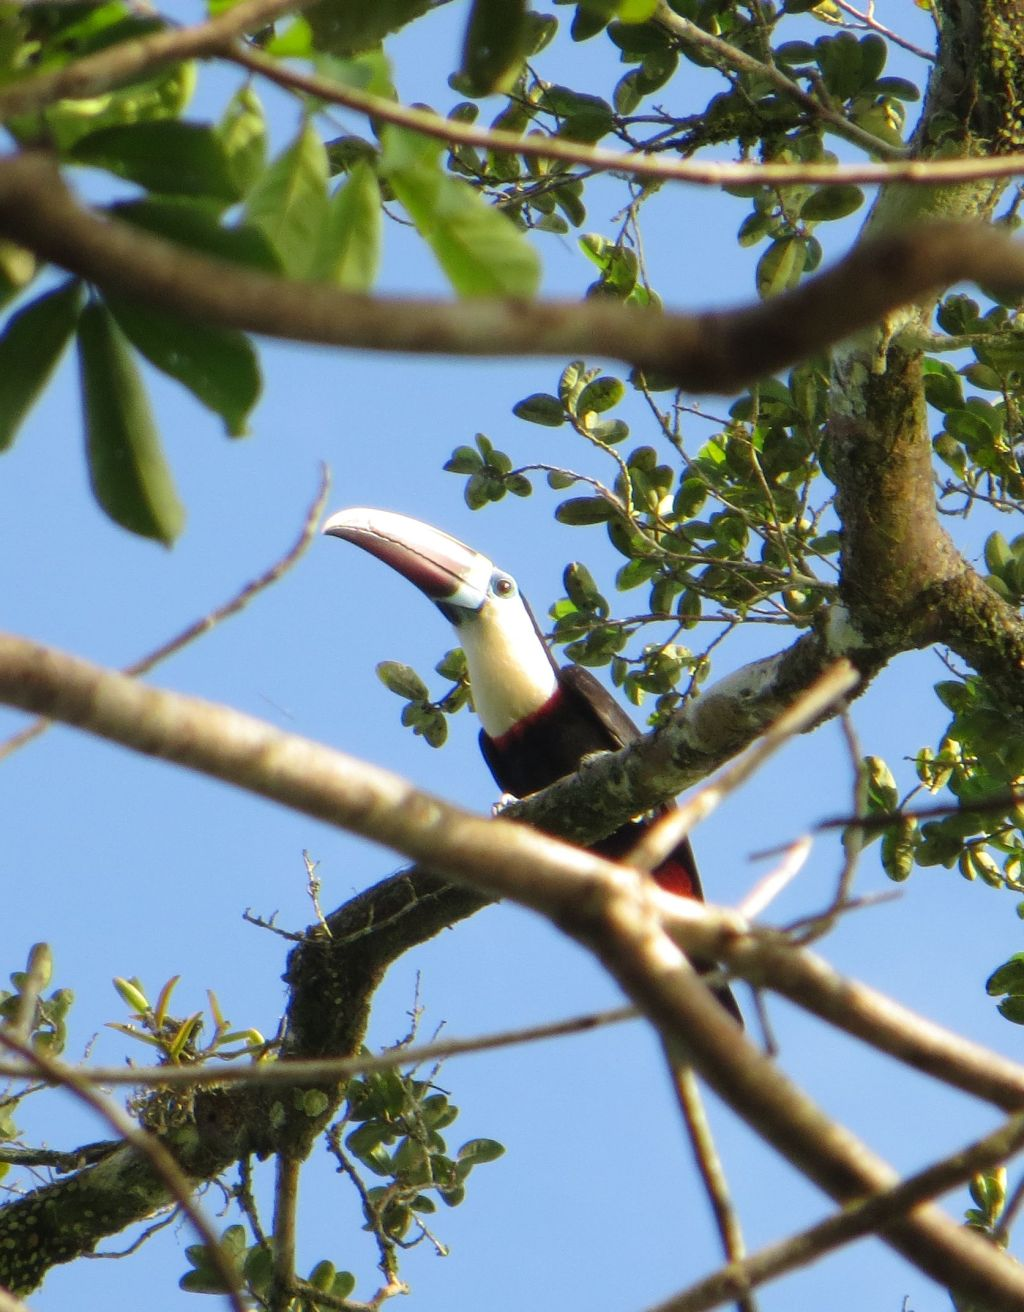 Ramphastos tucanus, White-throated Toucan, Kuyake door Stephan Ferrier